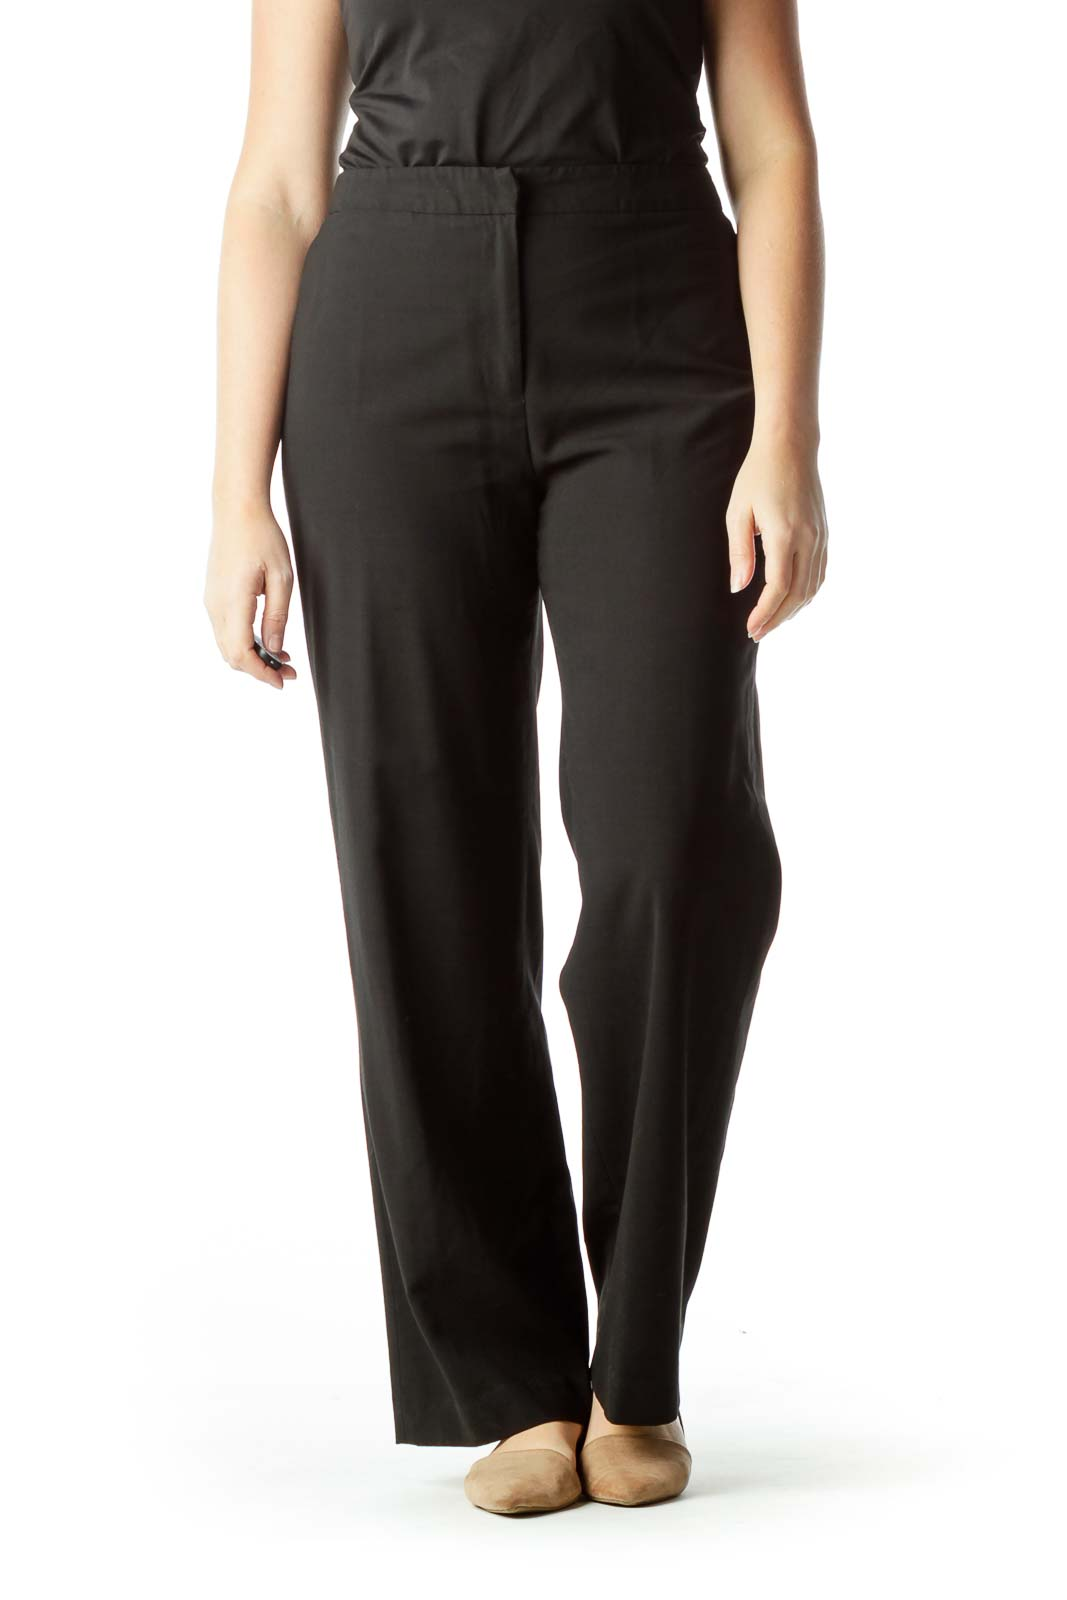 Black High-Waisted Slacks Front